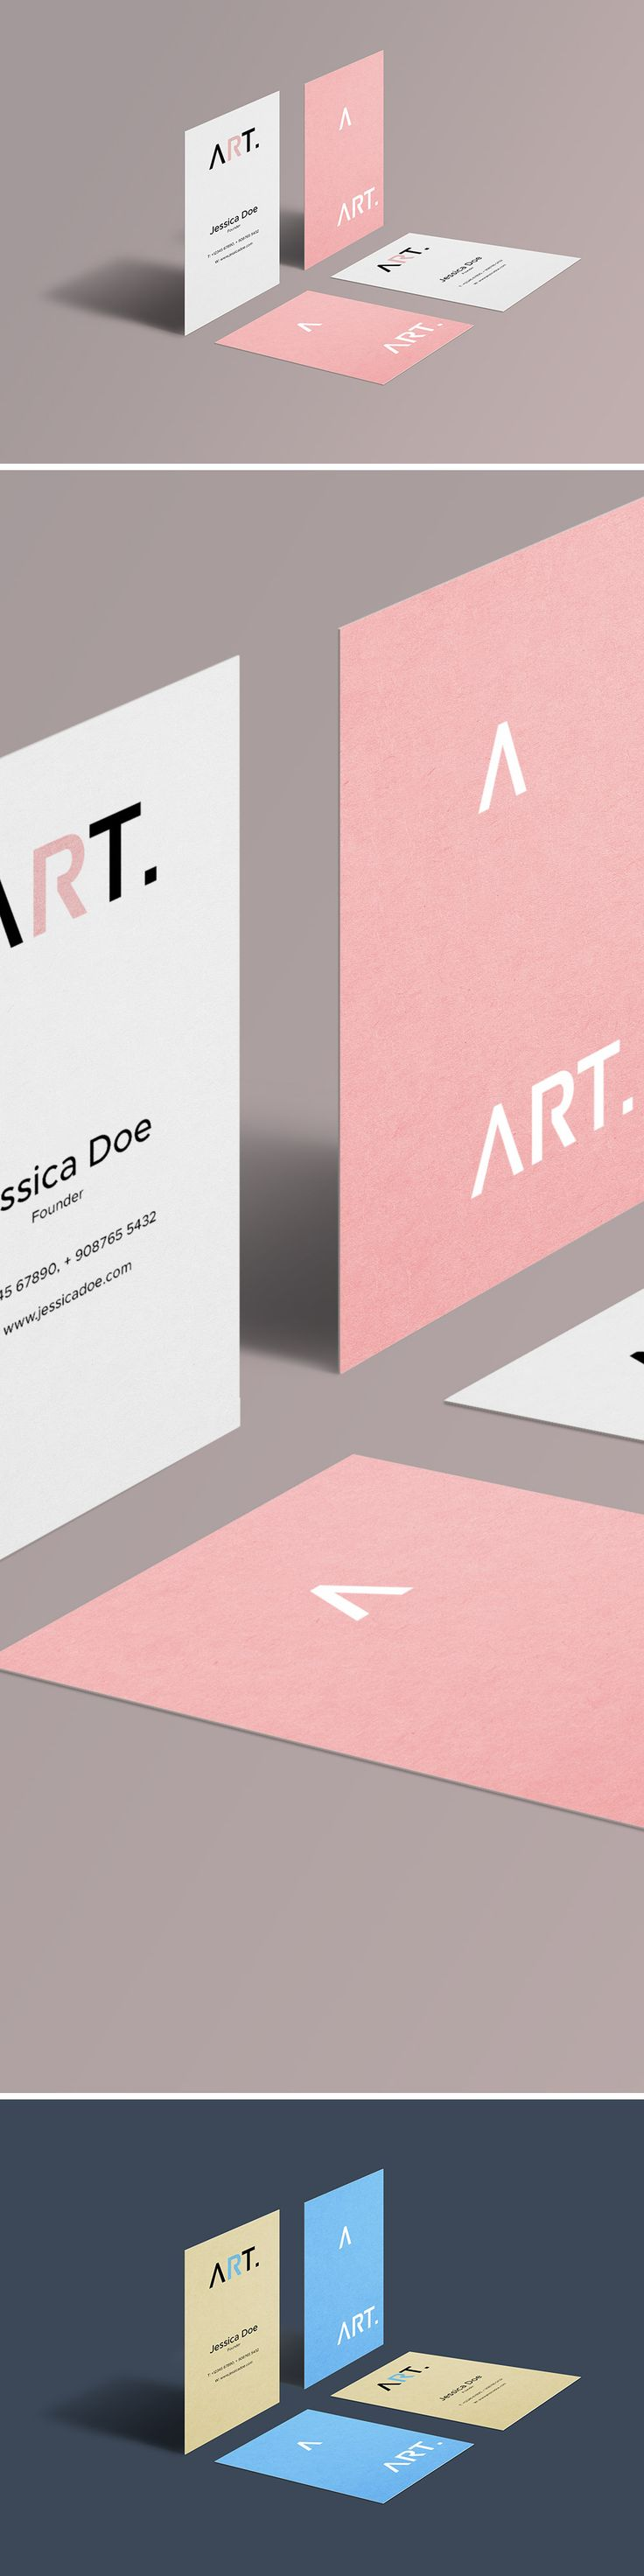 In need of business card mockup? Check this Perspective Business Card Mockup Free Template we bring you today! This mockup allows you to customize according to your needs thanks to the smart objects included. Let's grab it and showcase your branding or personal identity in professional way.